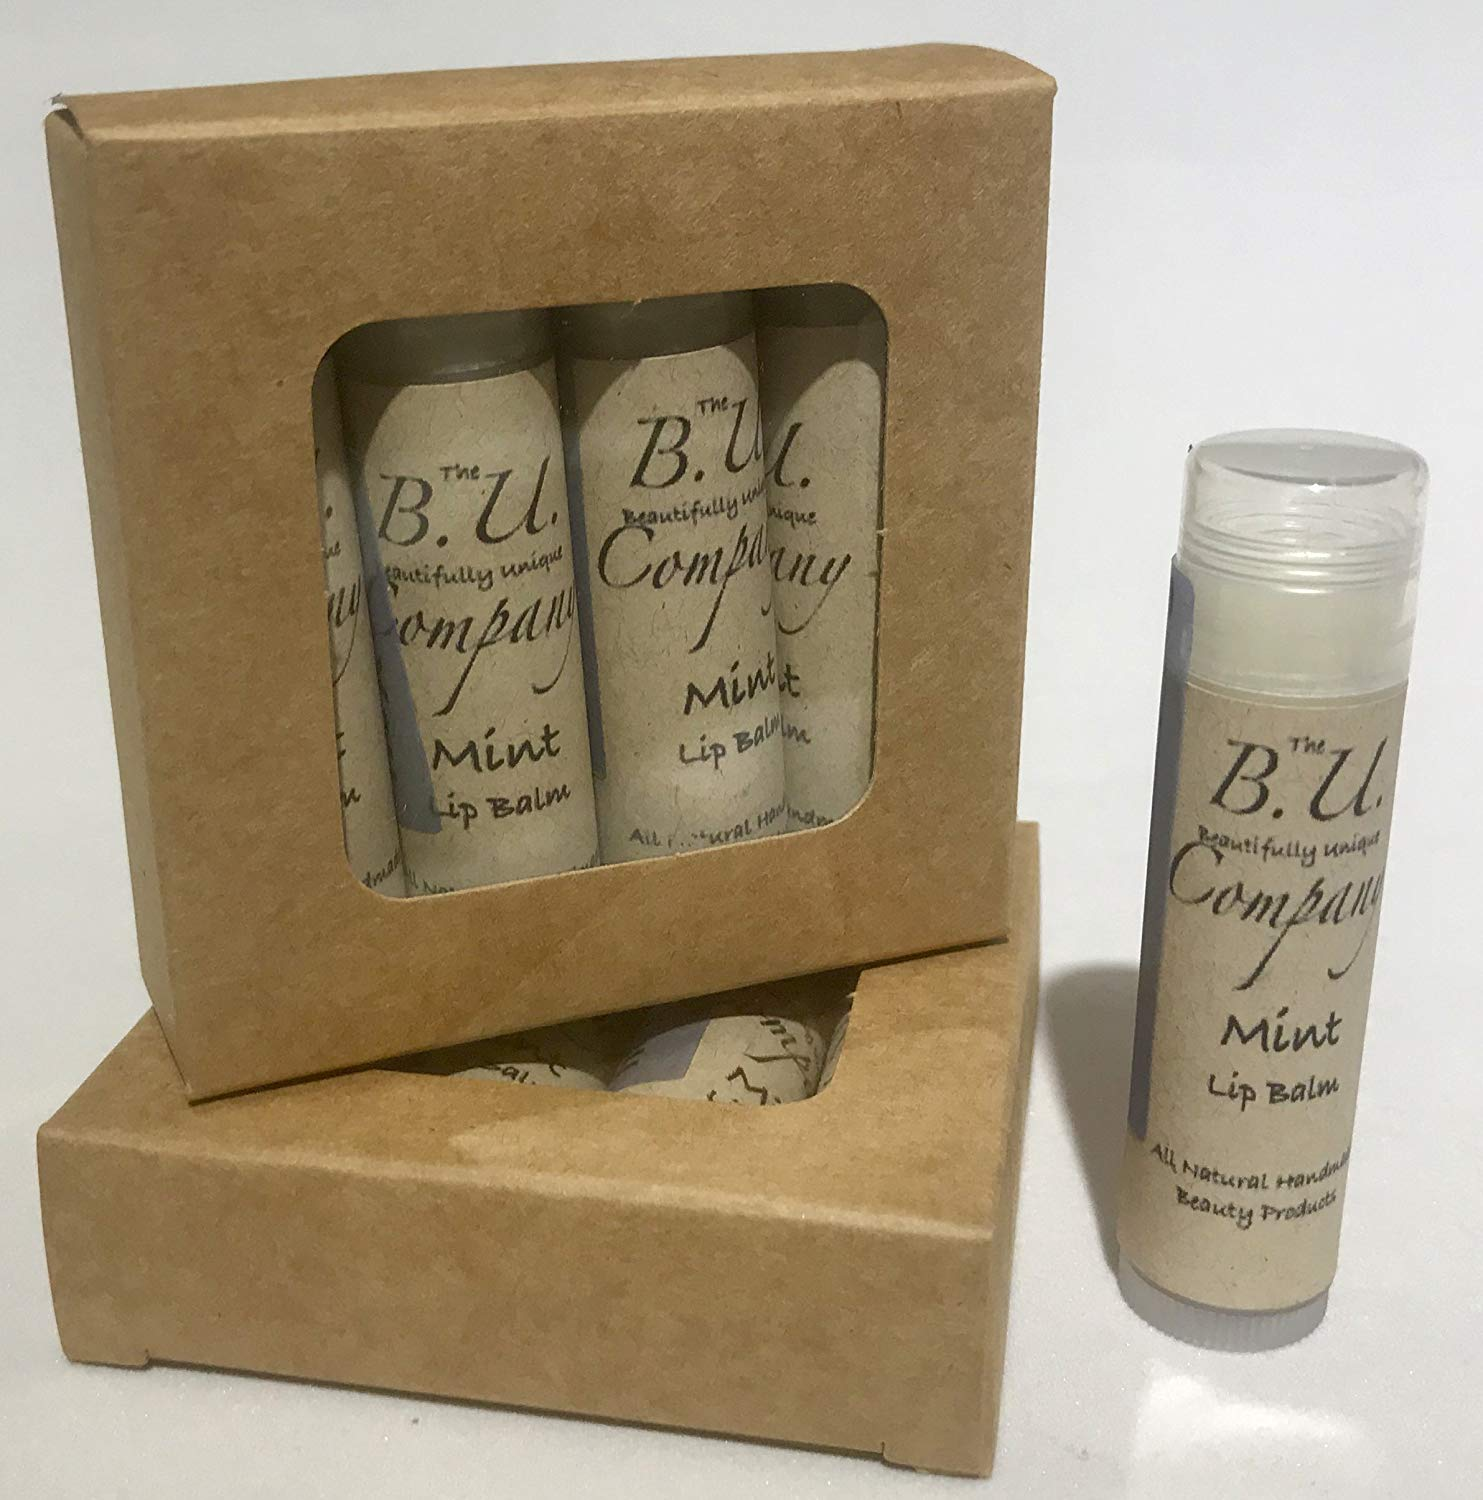 All Natural Mint Lip Balm - All Natural Handmade - BU Company - 4 pack